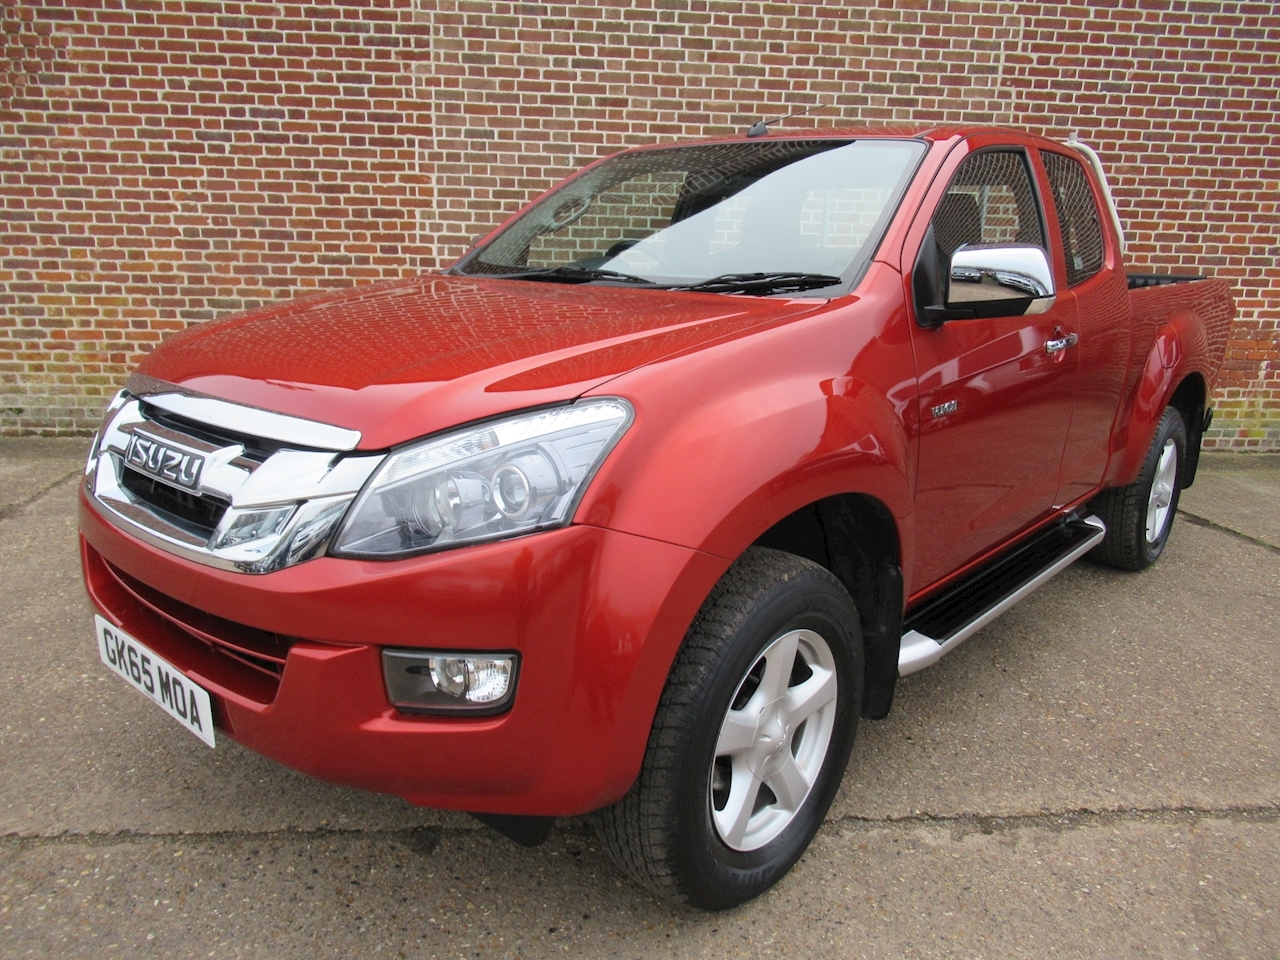 Isuzu D-Max Td Yukon Ecb 2.5 2dr Pick-Up Manual Diesel